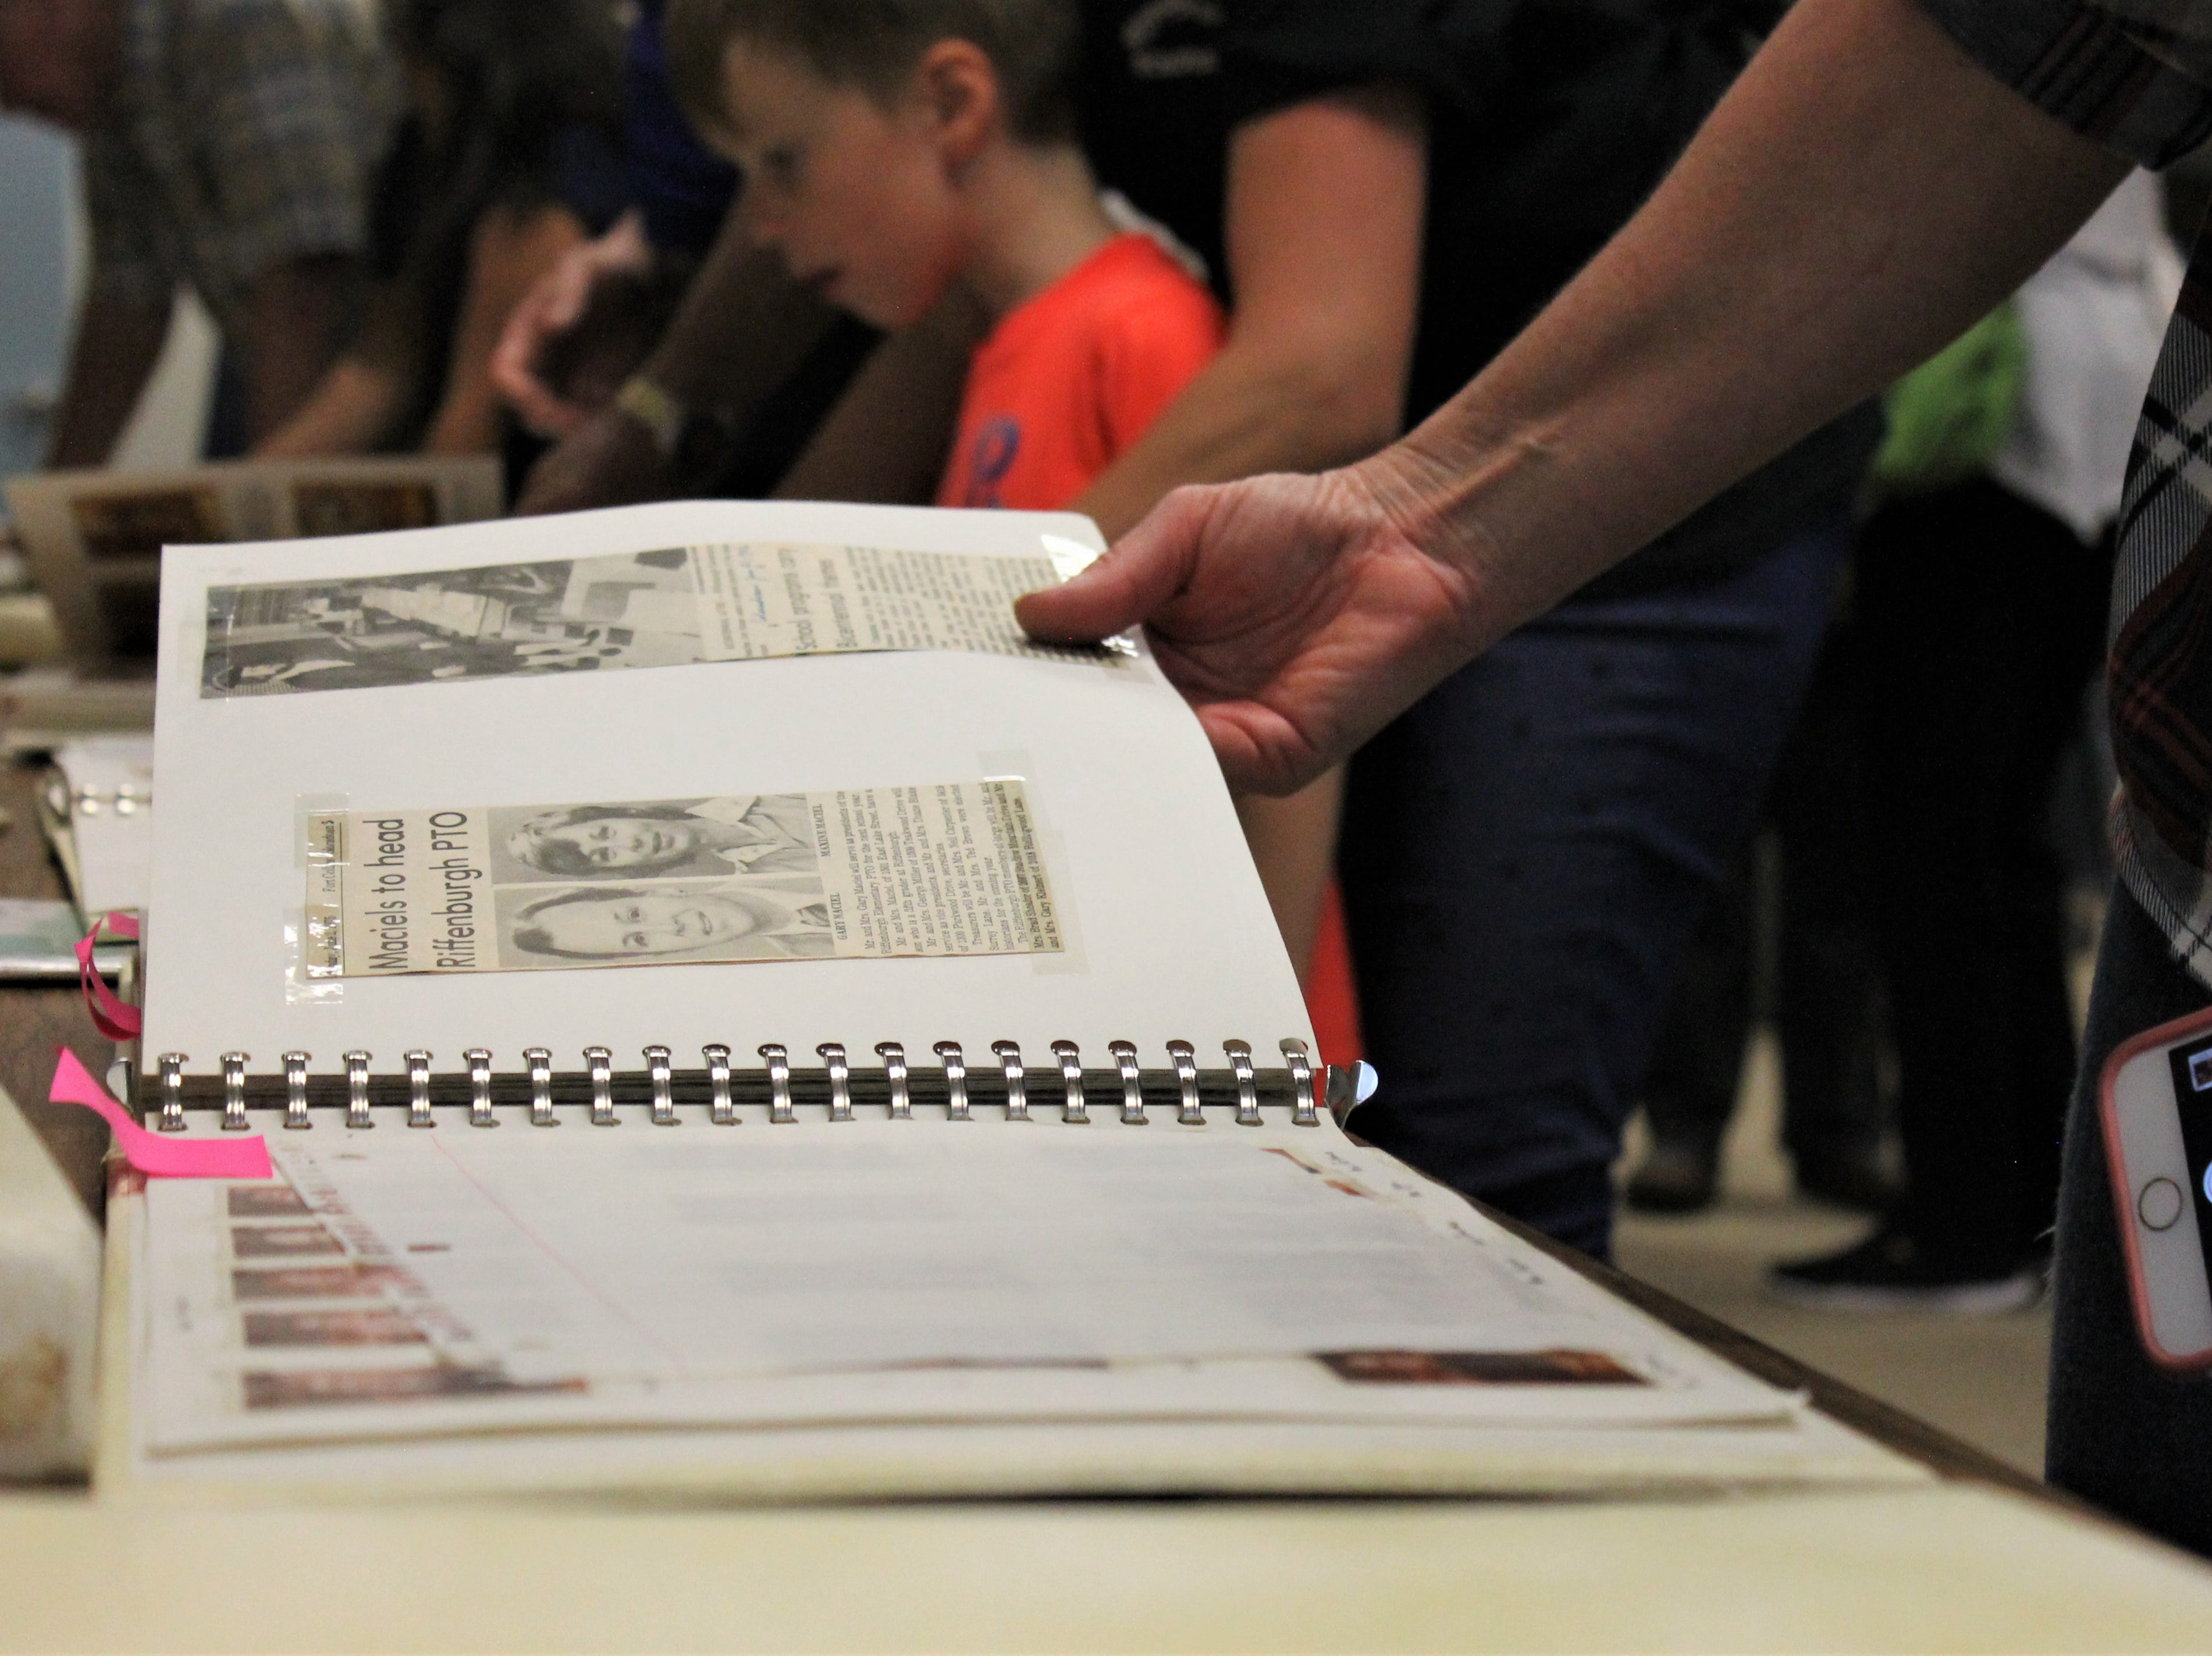 Students, parents and alum flip through old news clippings Friday at Riffenburgh Elementary School's 50th anniversary celebration.